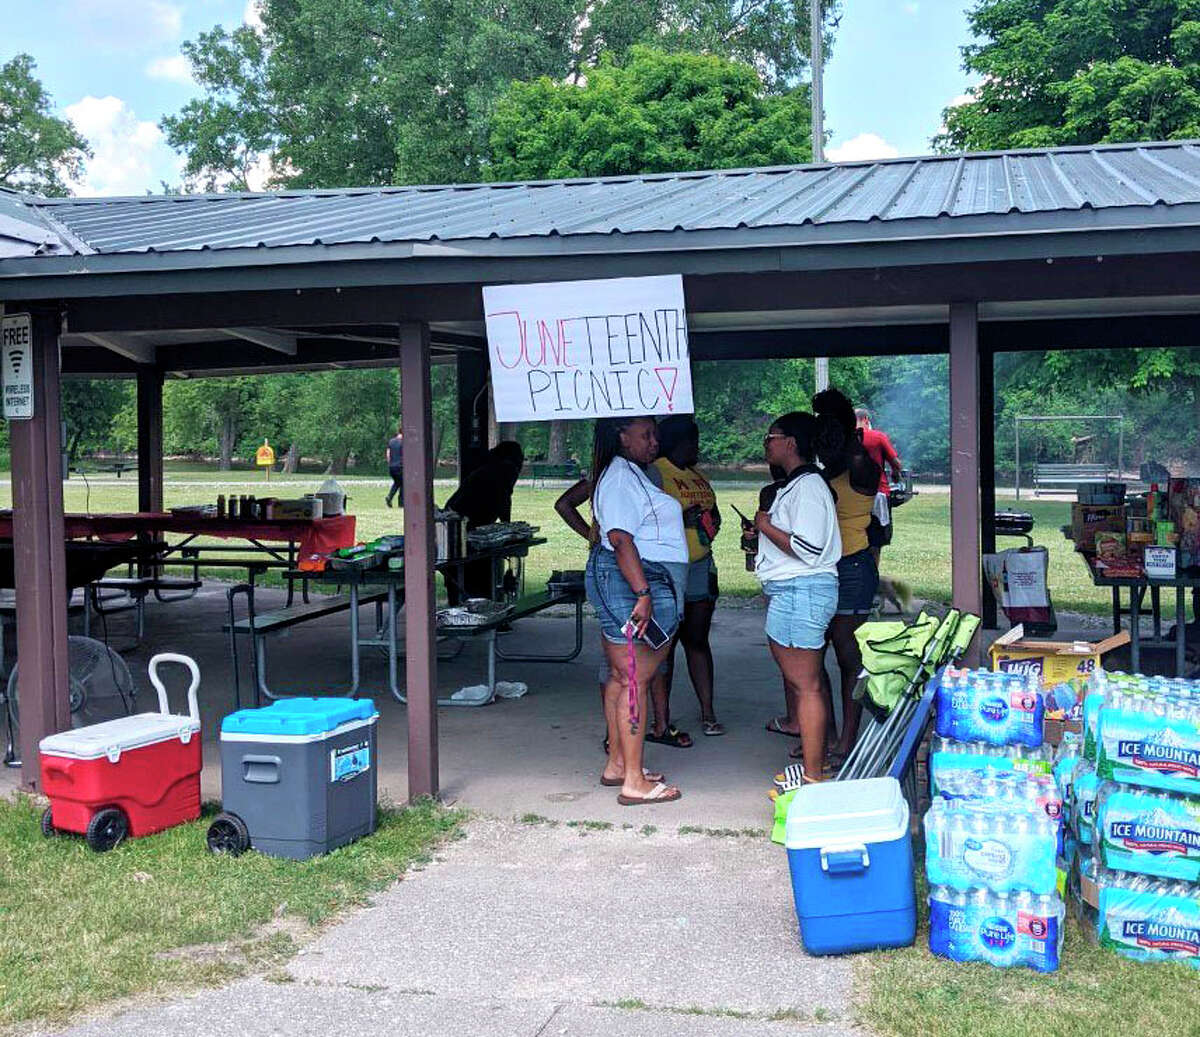 This Saturday, Big Rapids residents and visitors will gather in Hemlock Park for this year's Juneteenth Celebration Picnic.